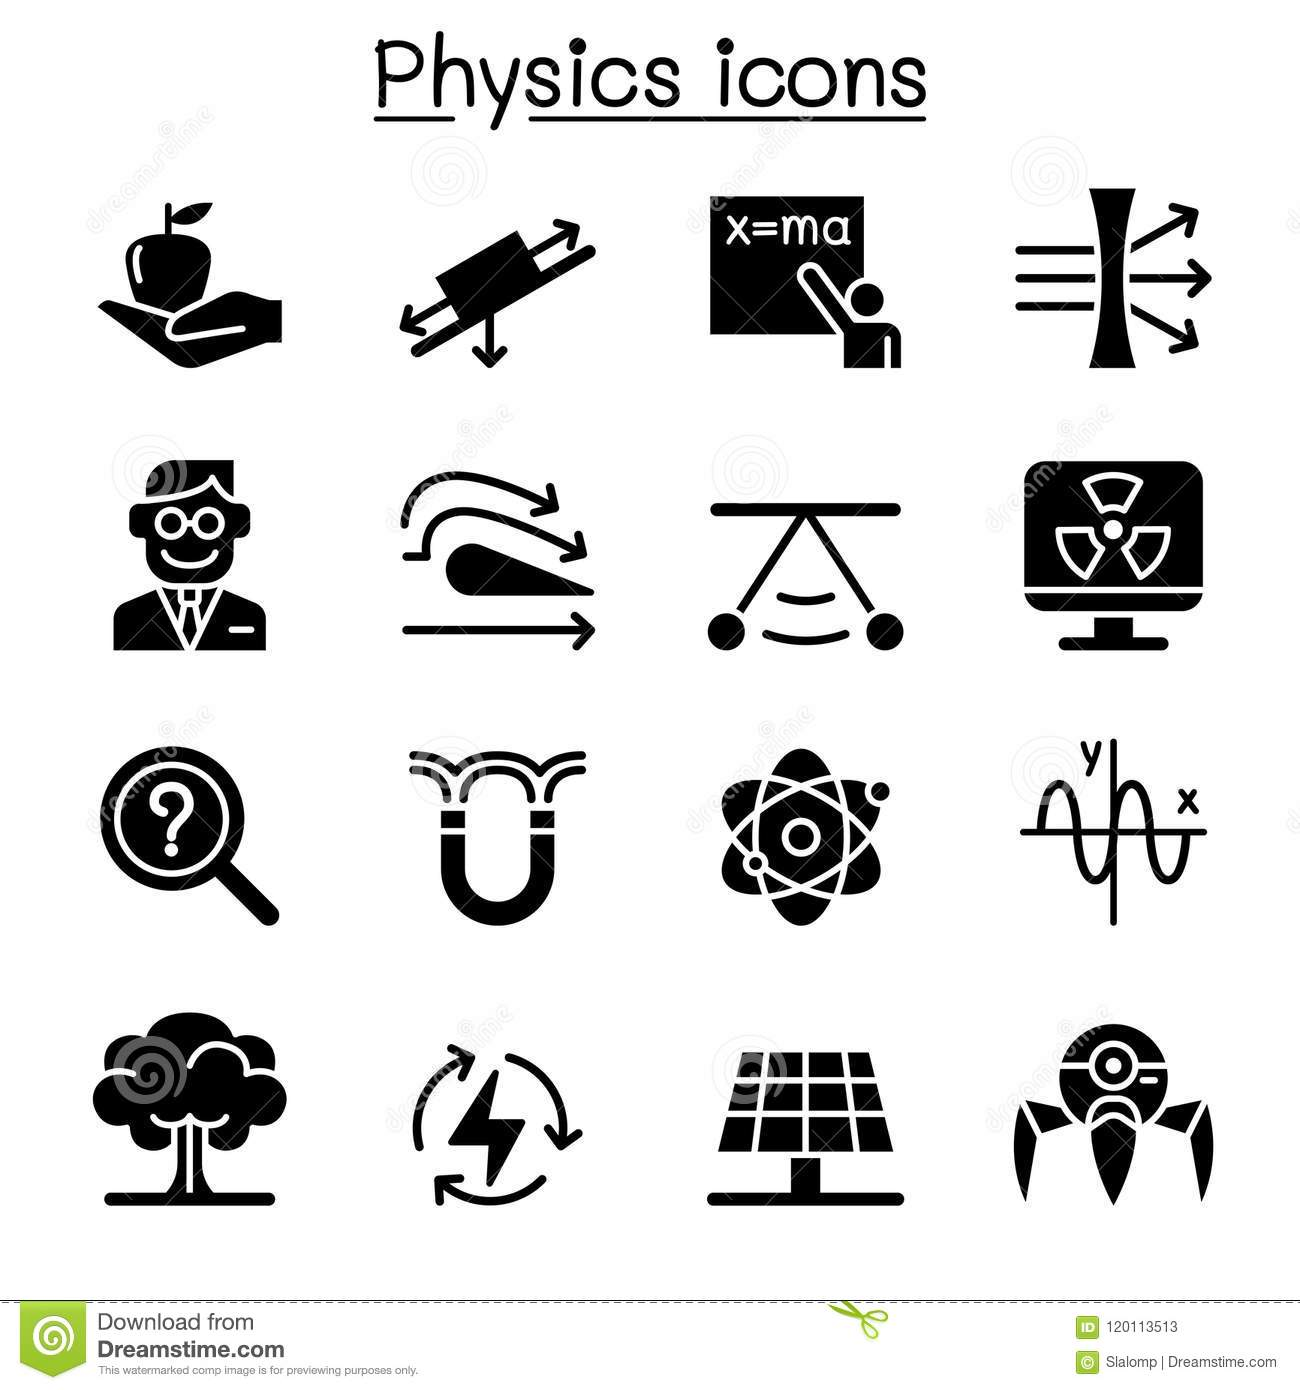 Physics icon set stock vector. Illustration of magnetic